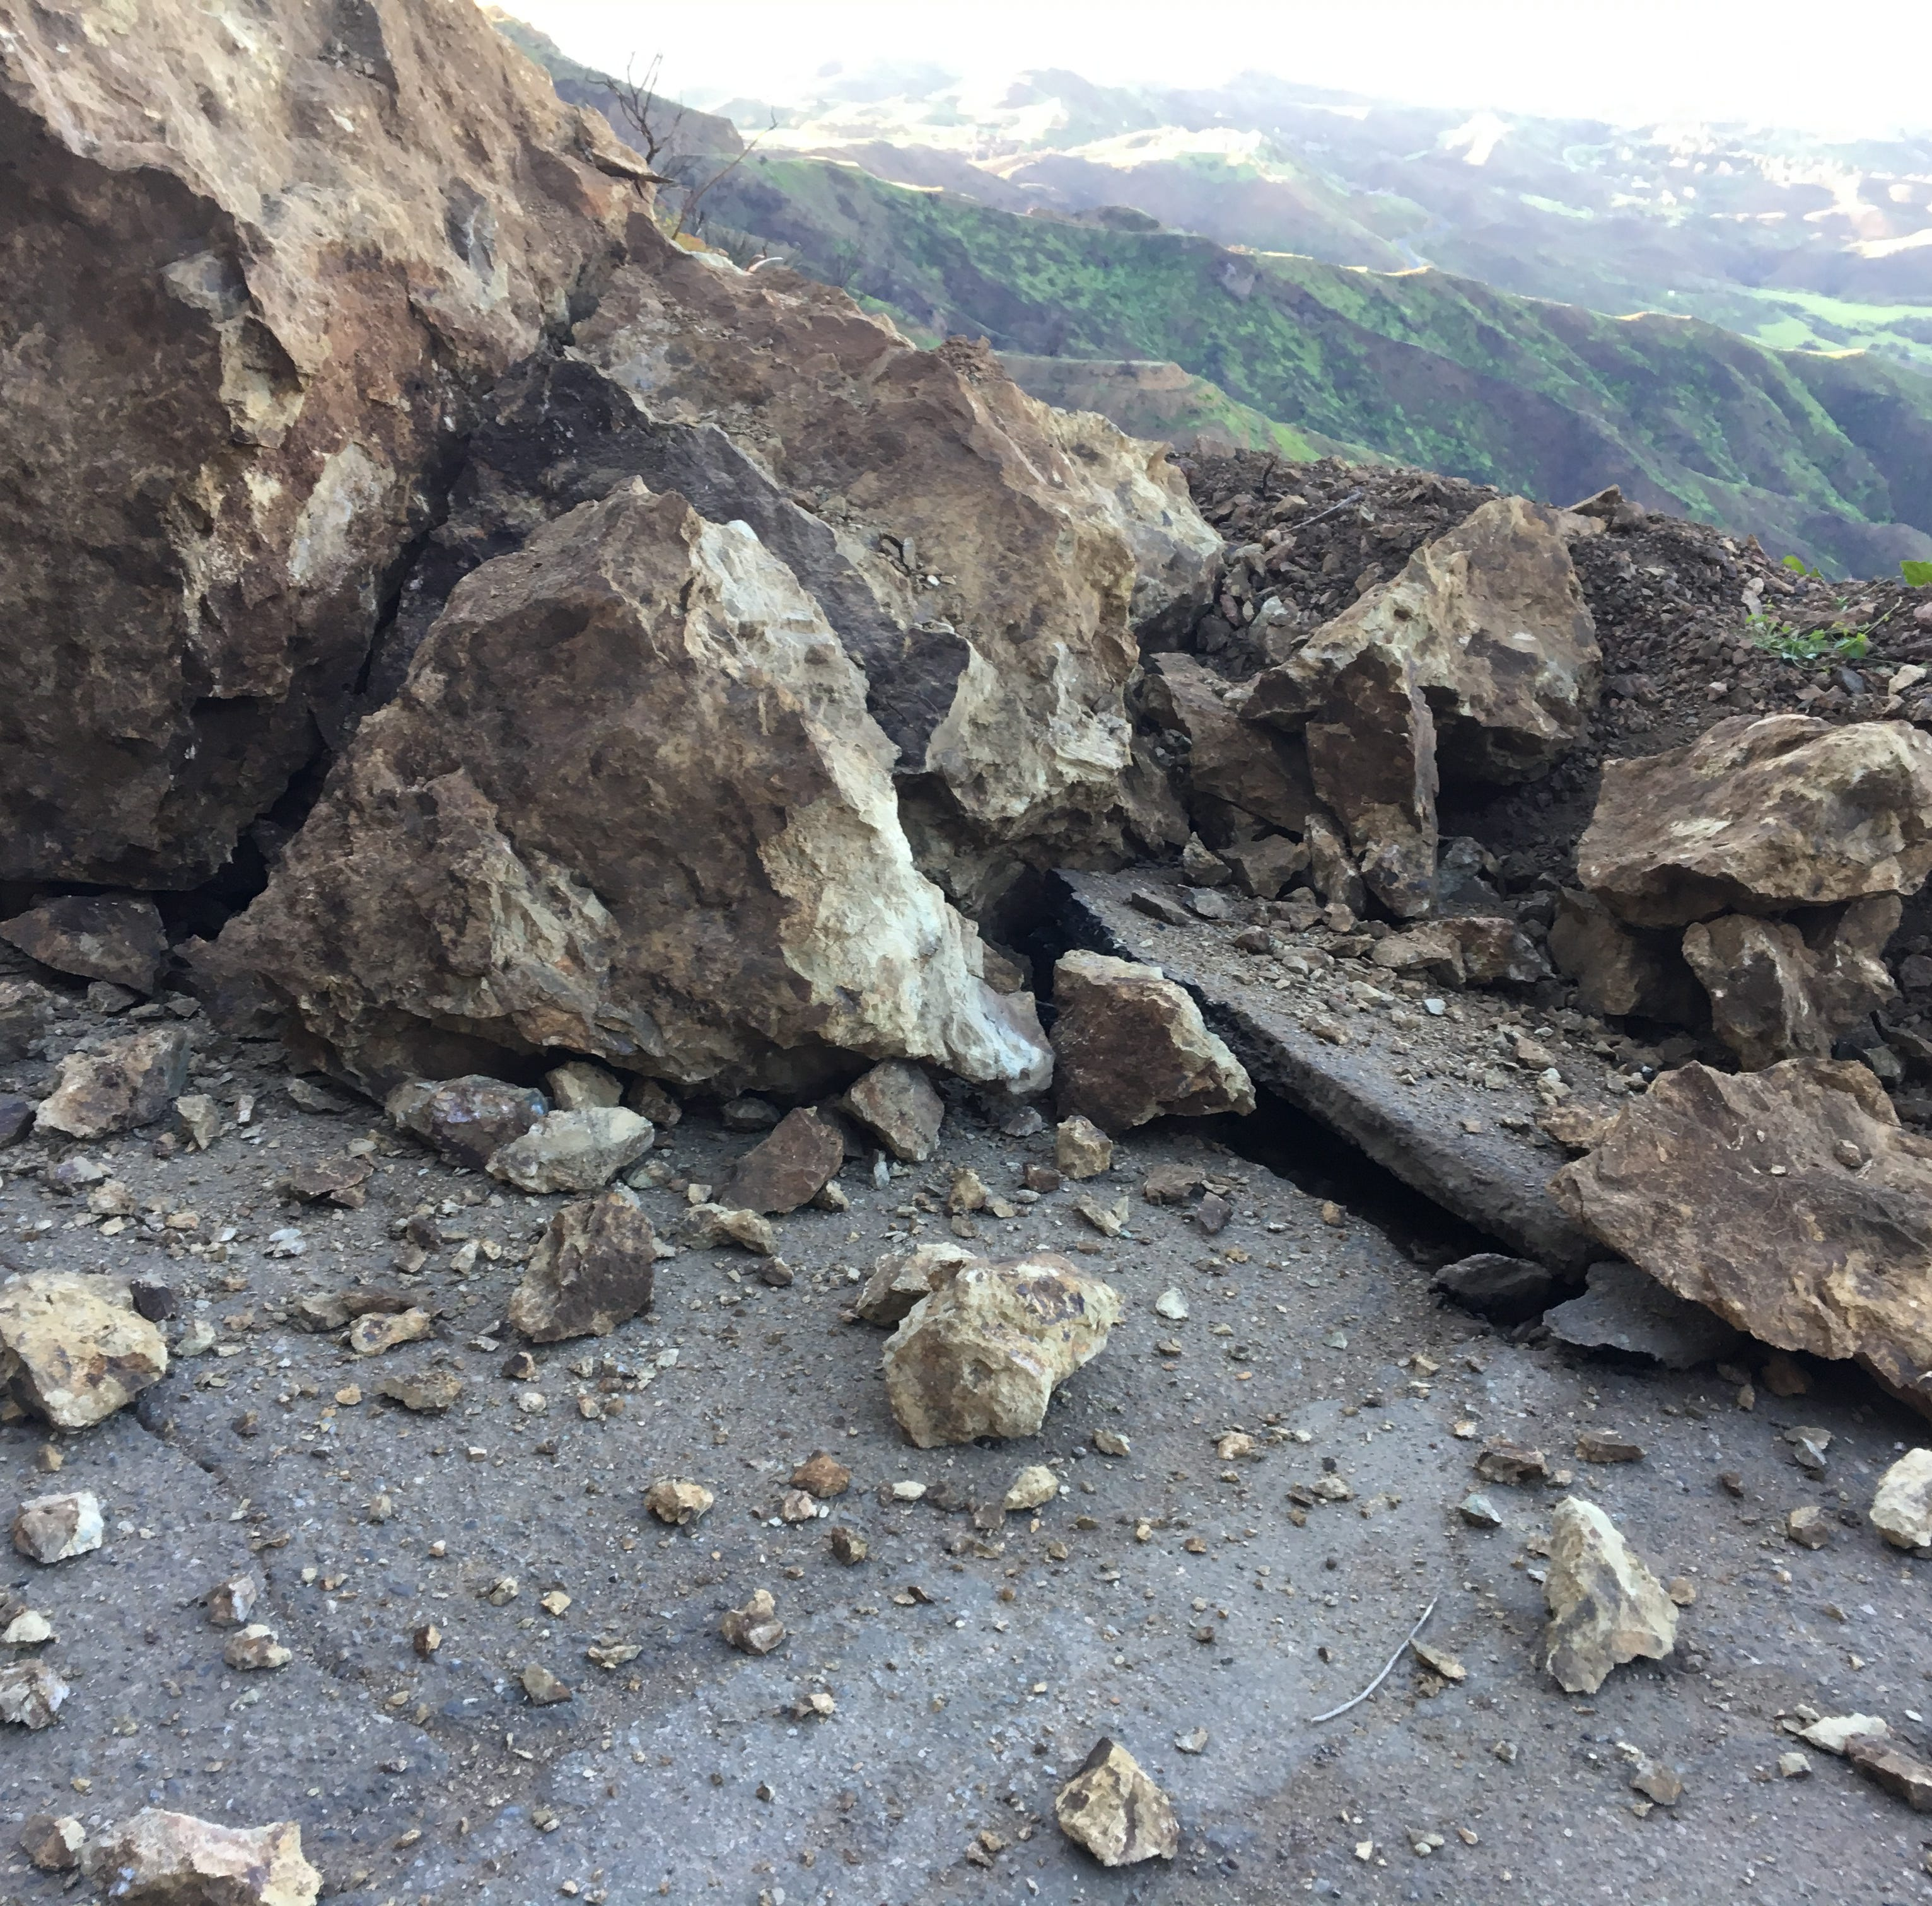 Sinkhole, rockslide close a road winding through Santa Monica Mountains